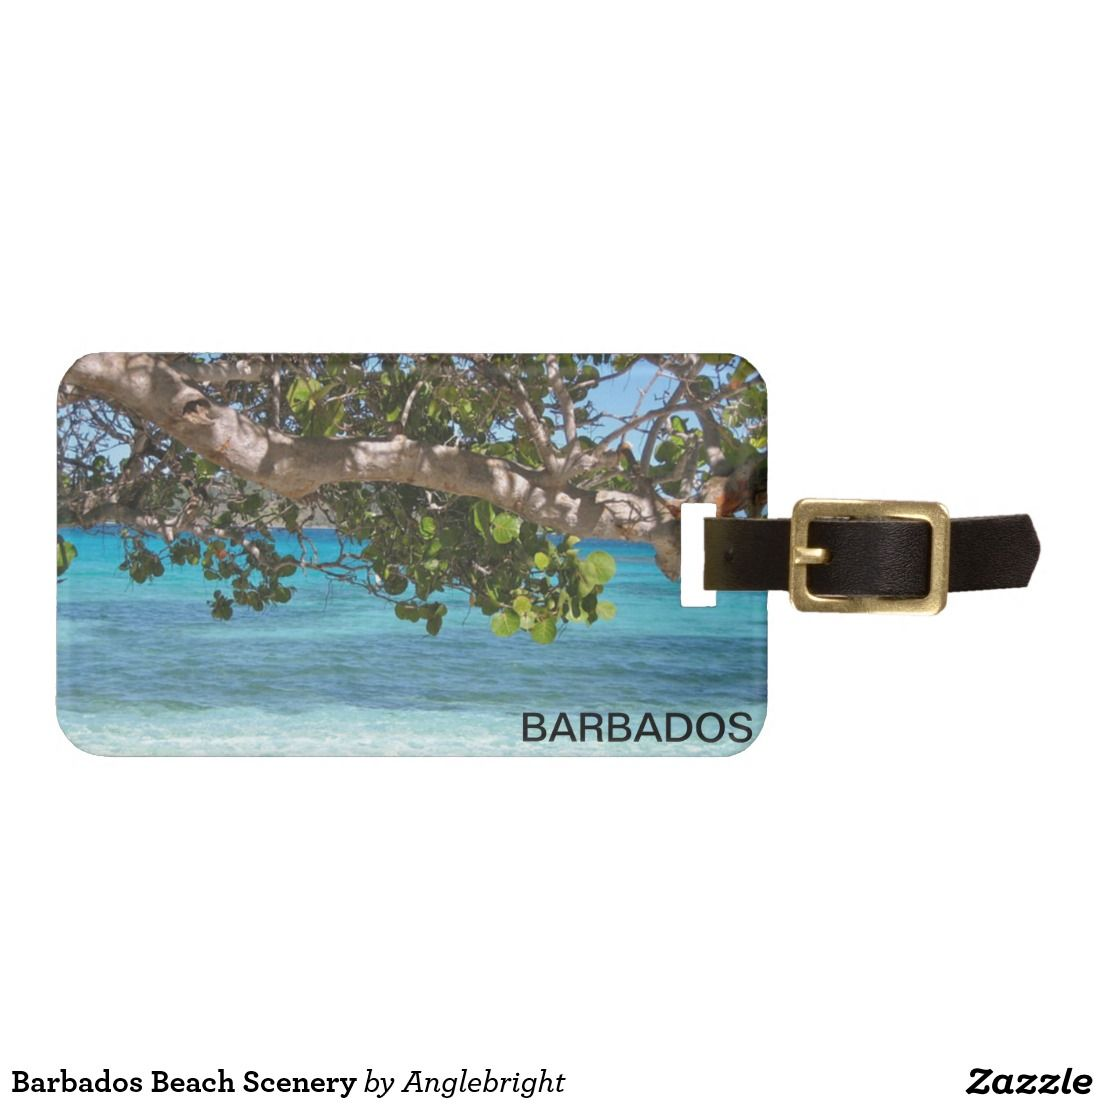 Barbados Beach Scenery Luggage Tags